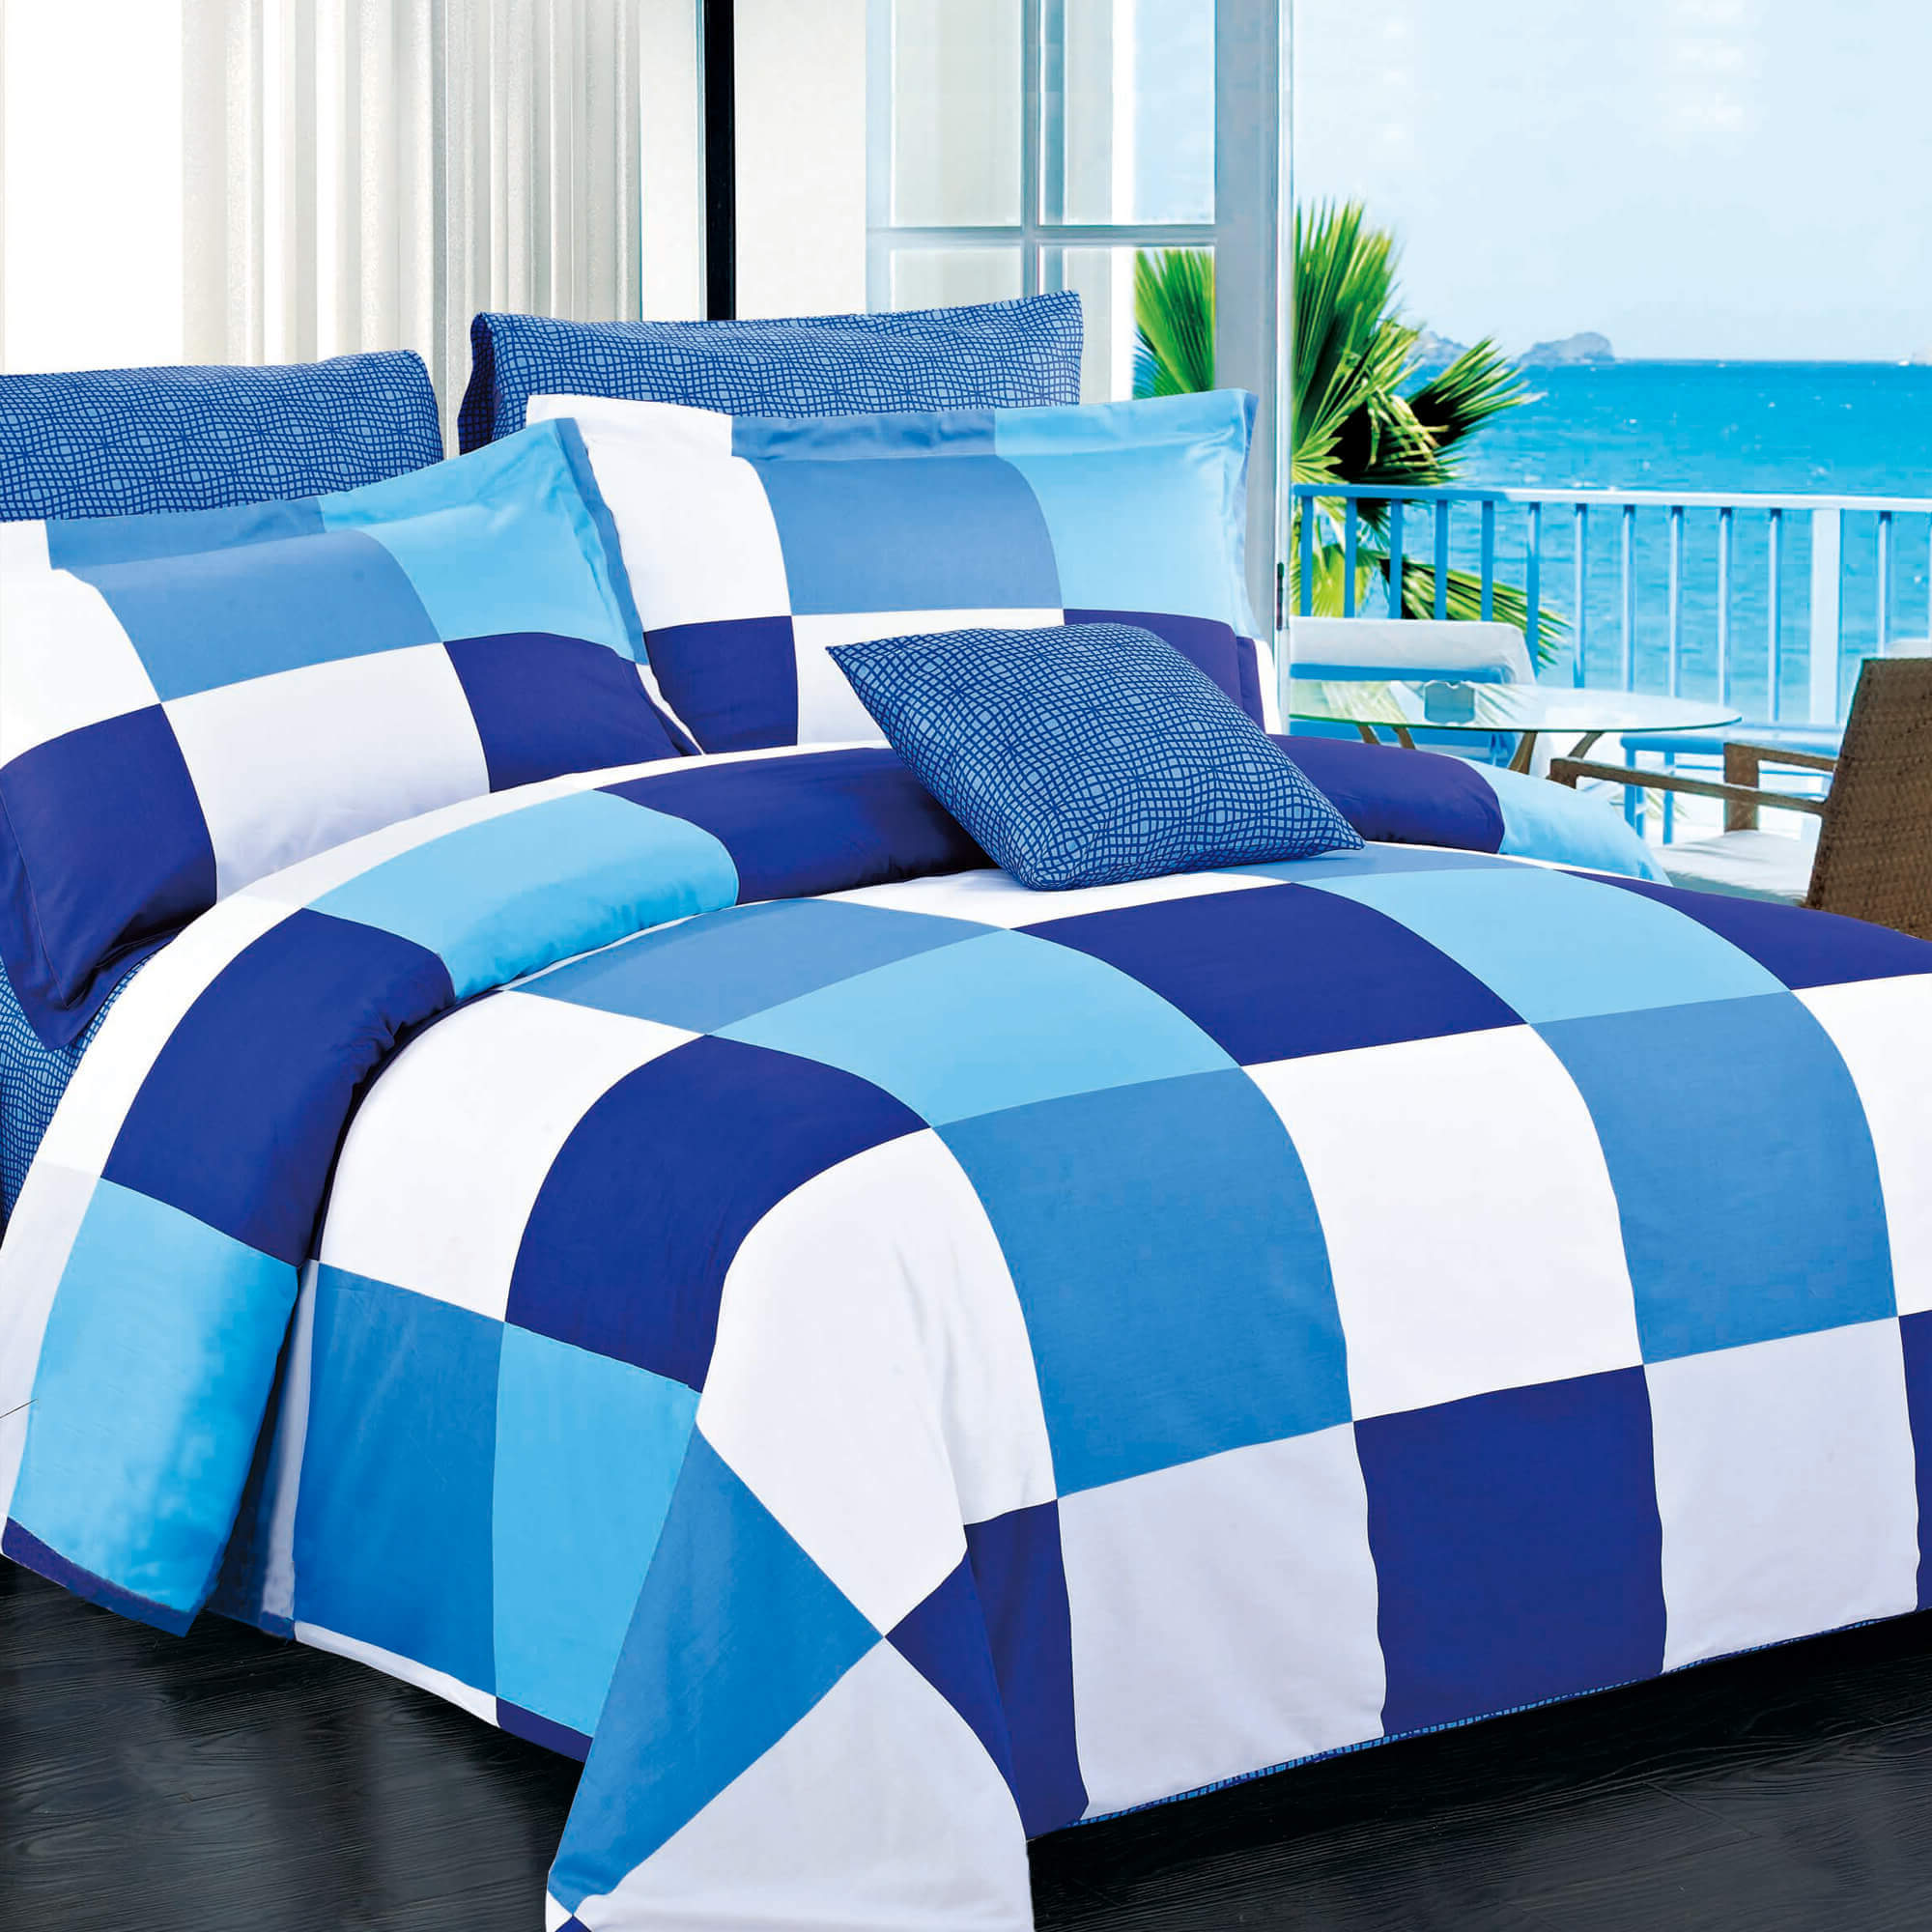 Park Navy Duvet Cover Set